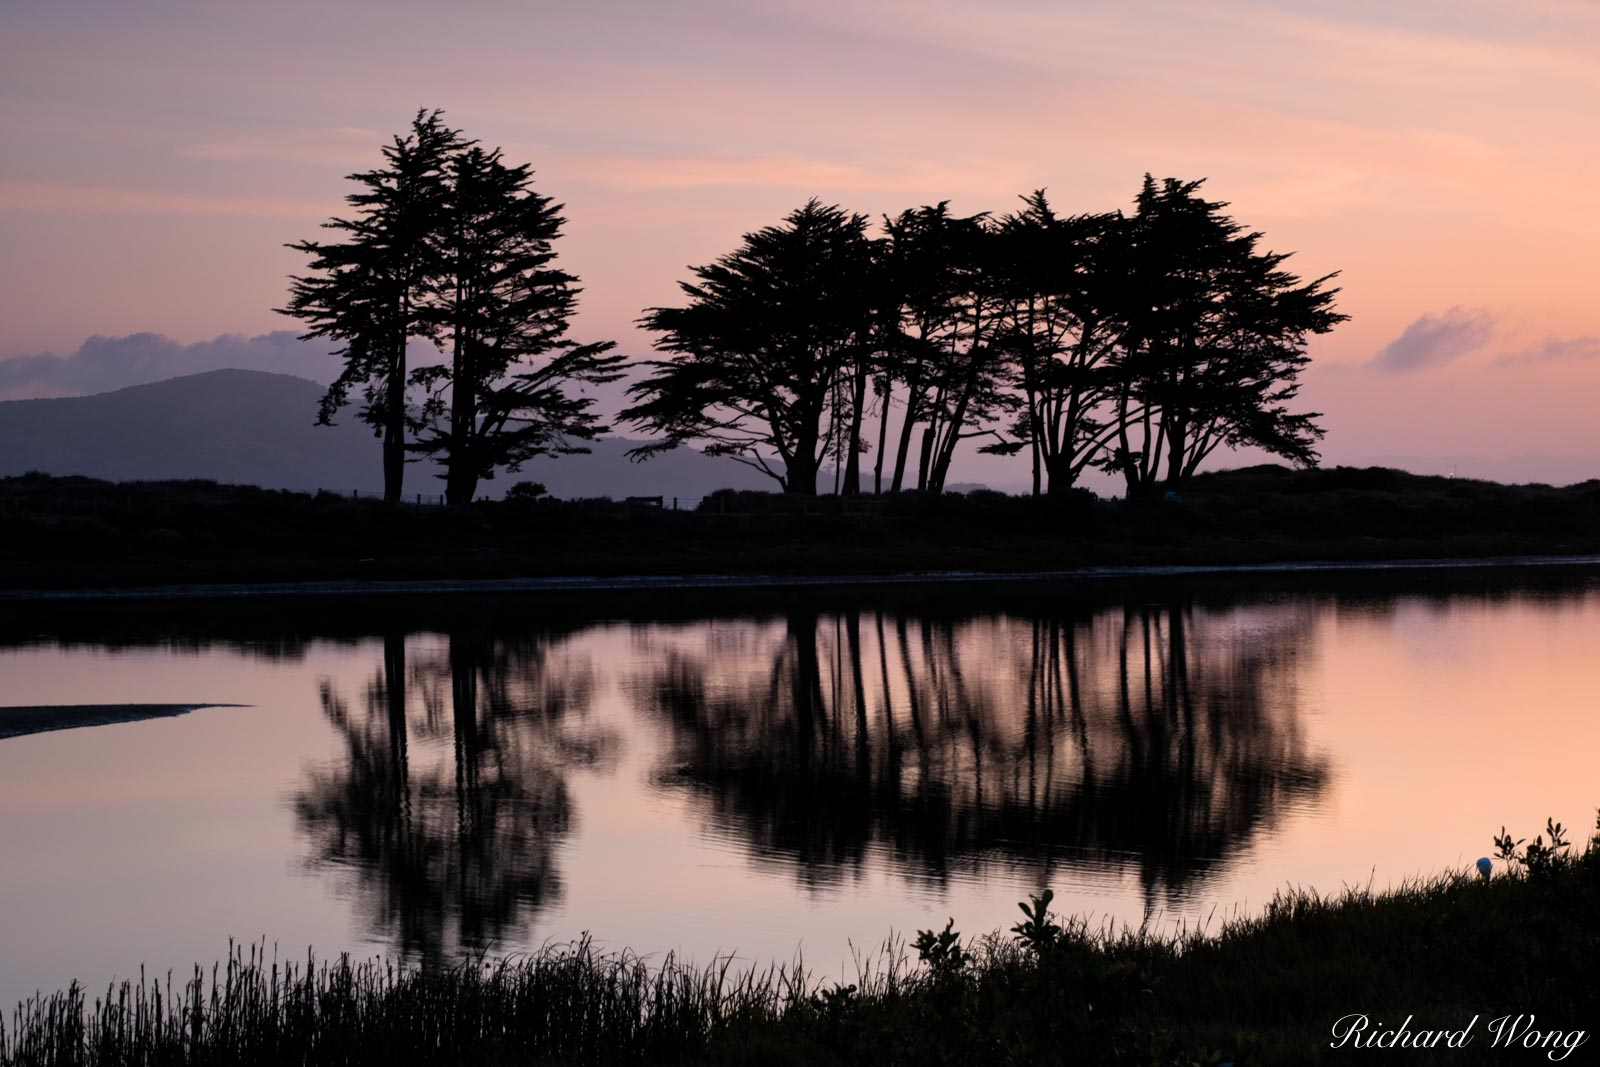 Monterey Cypress Trees Silhouetted in Pre-Dawn Light at Crissy Field Marsh, San Francisco, California, photo, photo